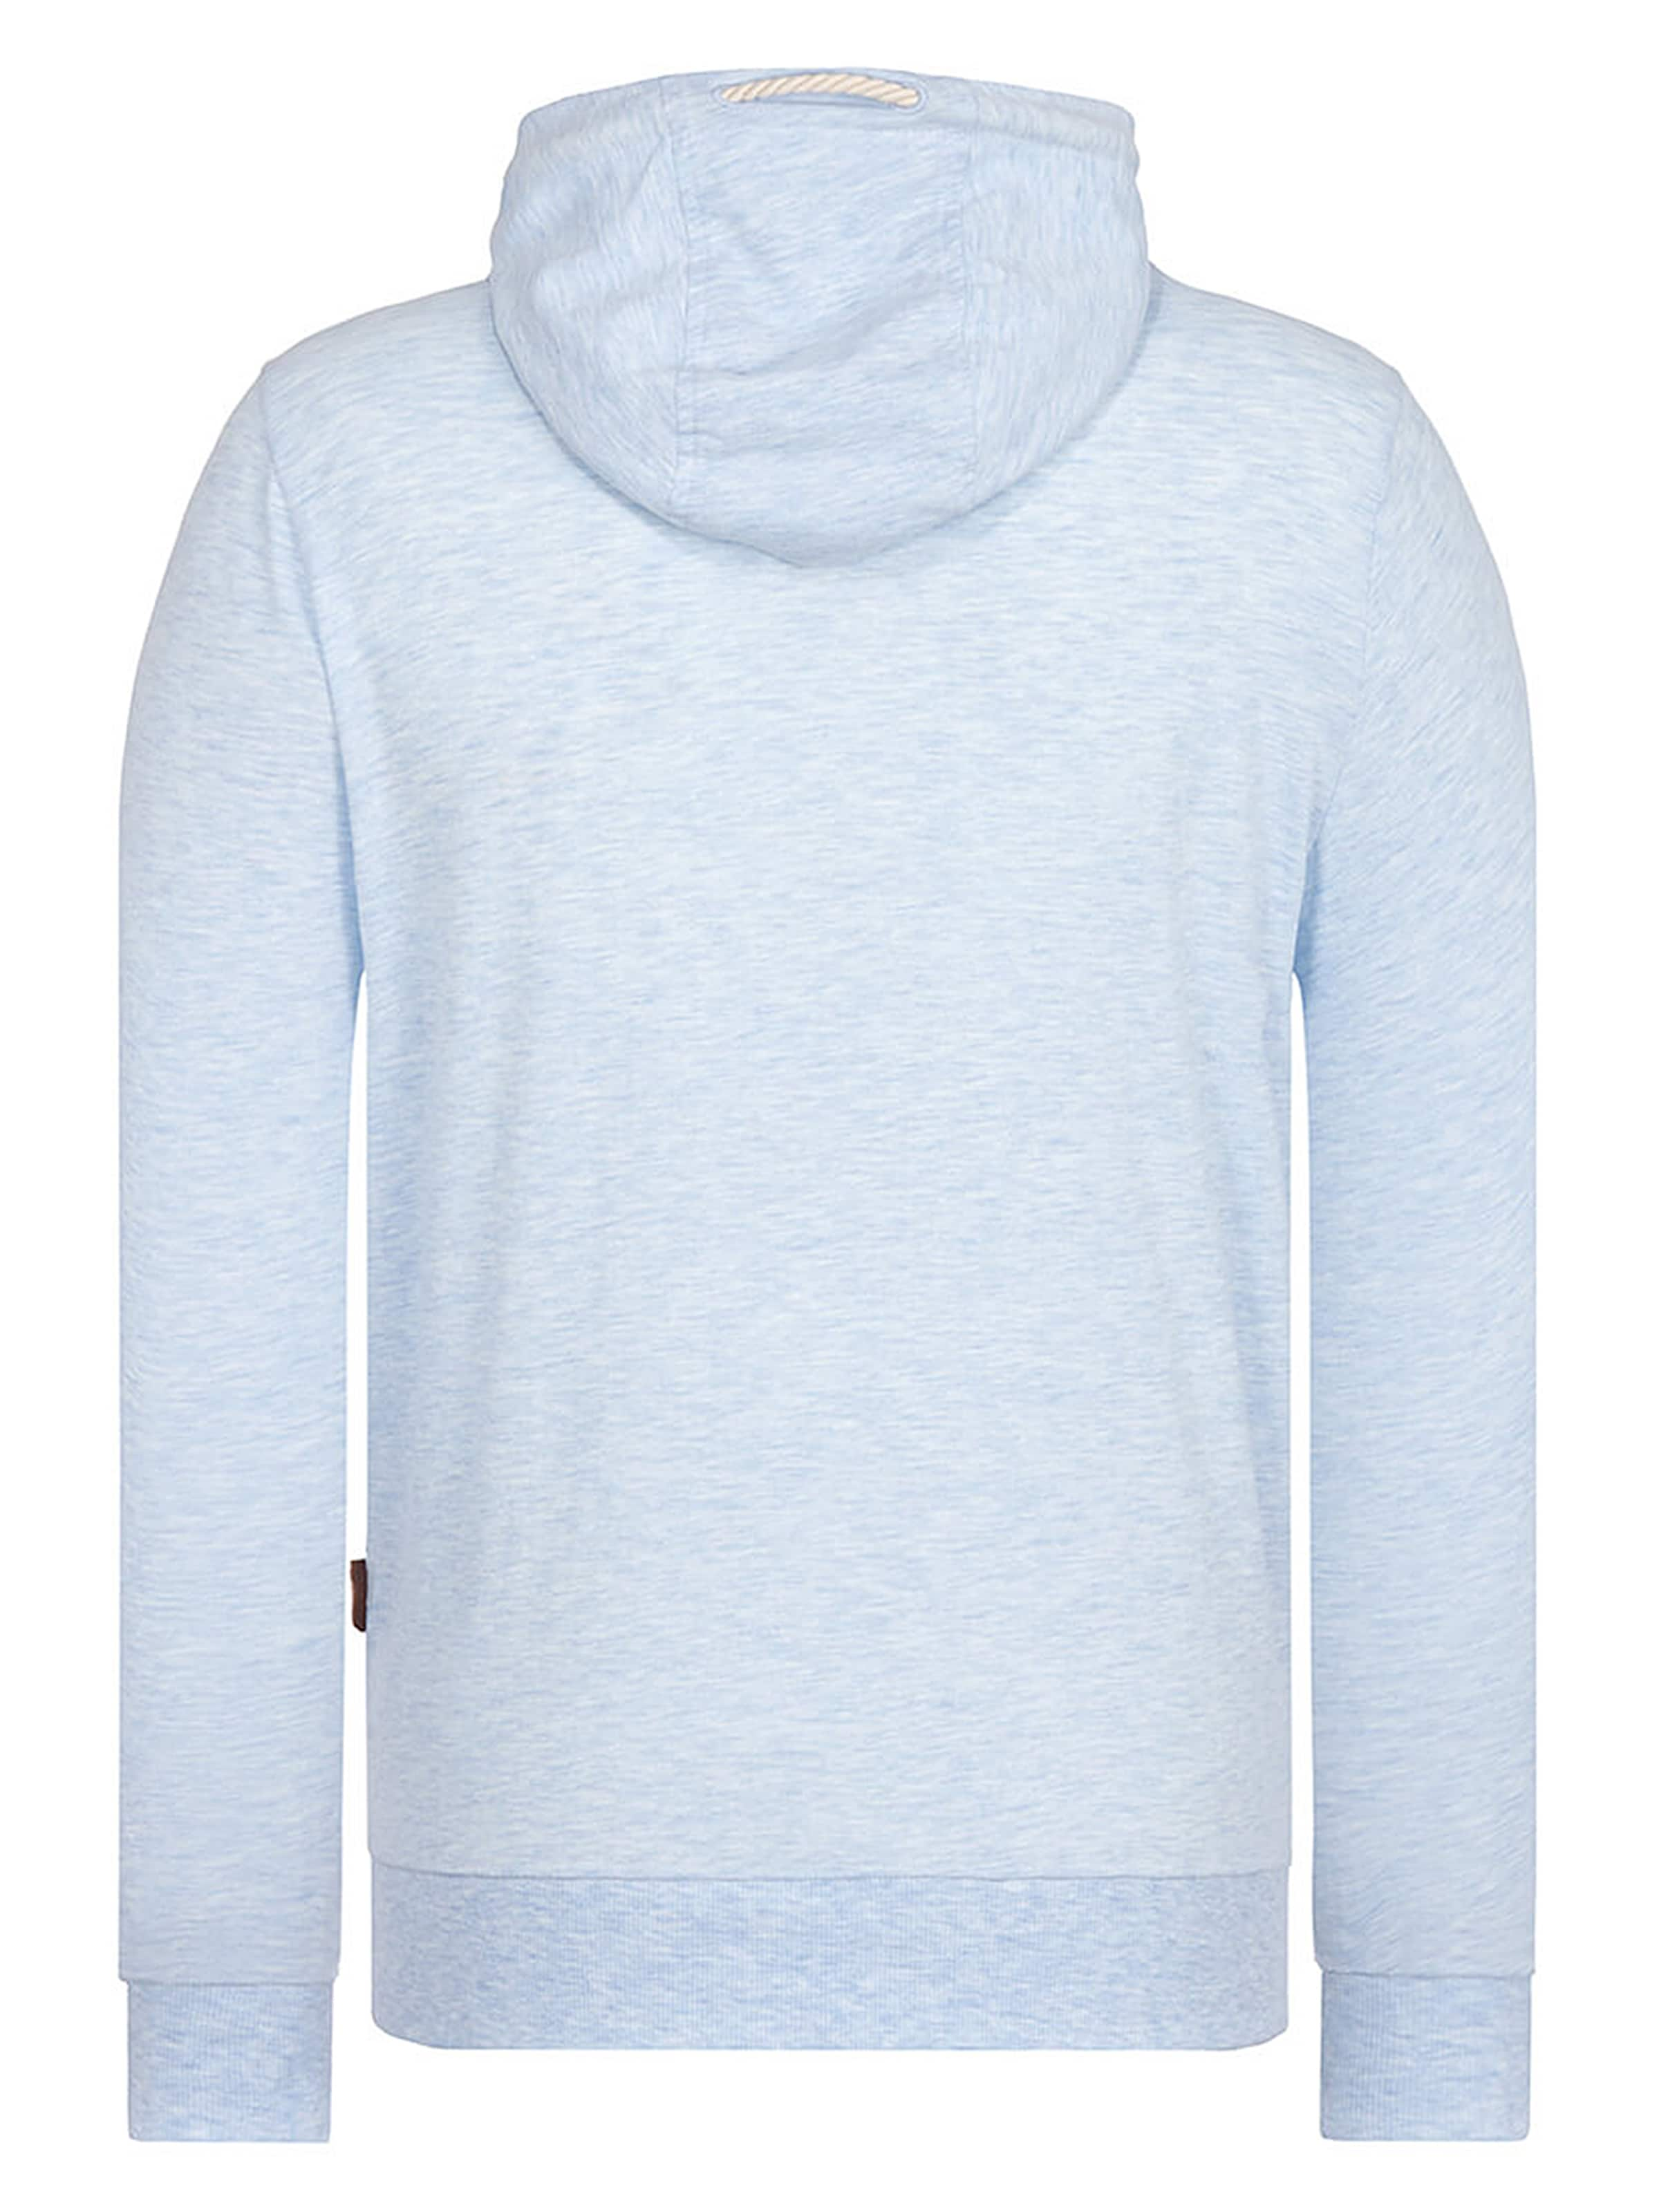 shirt 'diese Sweat Naketano Nüsse' Bleu Clair En 8vmnwO0N